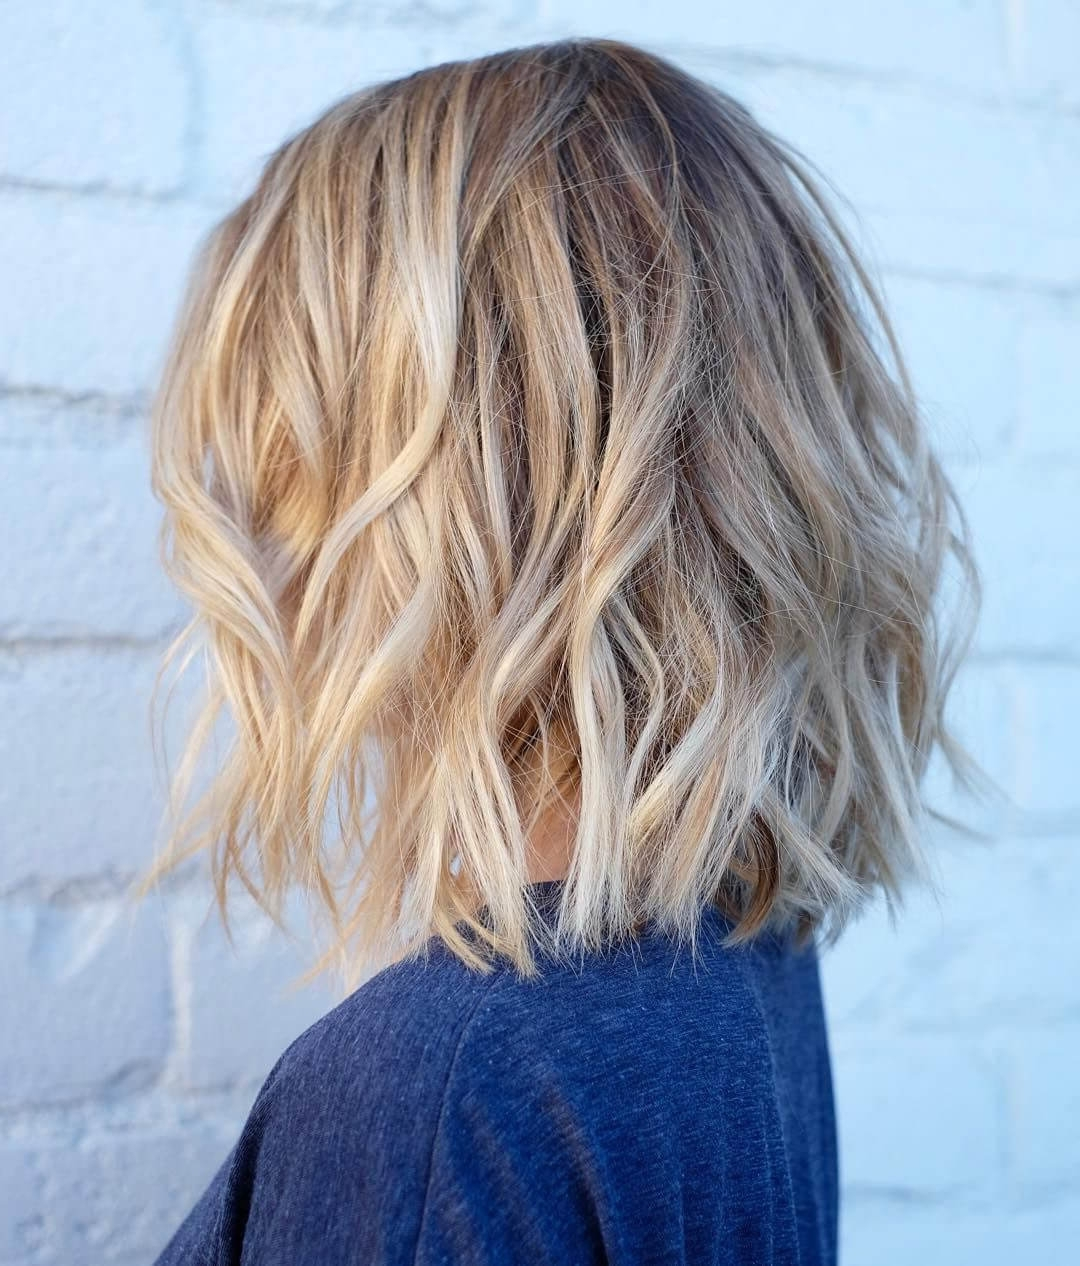 Widely Used Bright Long Bob Blonde Hairstyles With 50 Fresh Short Blonde Hair Ideas To Update Your Style In  (View 20 of 20)